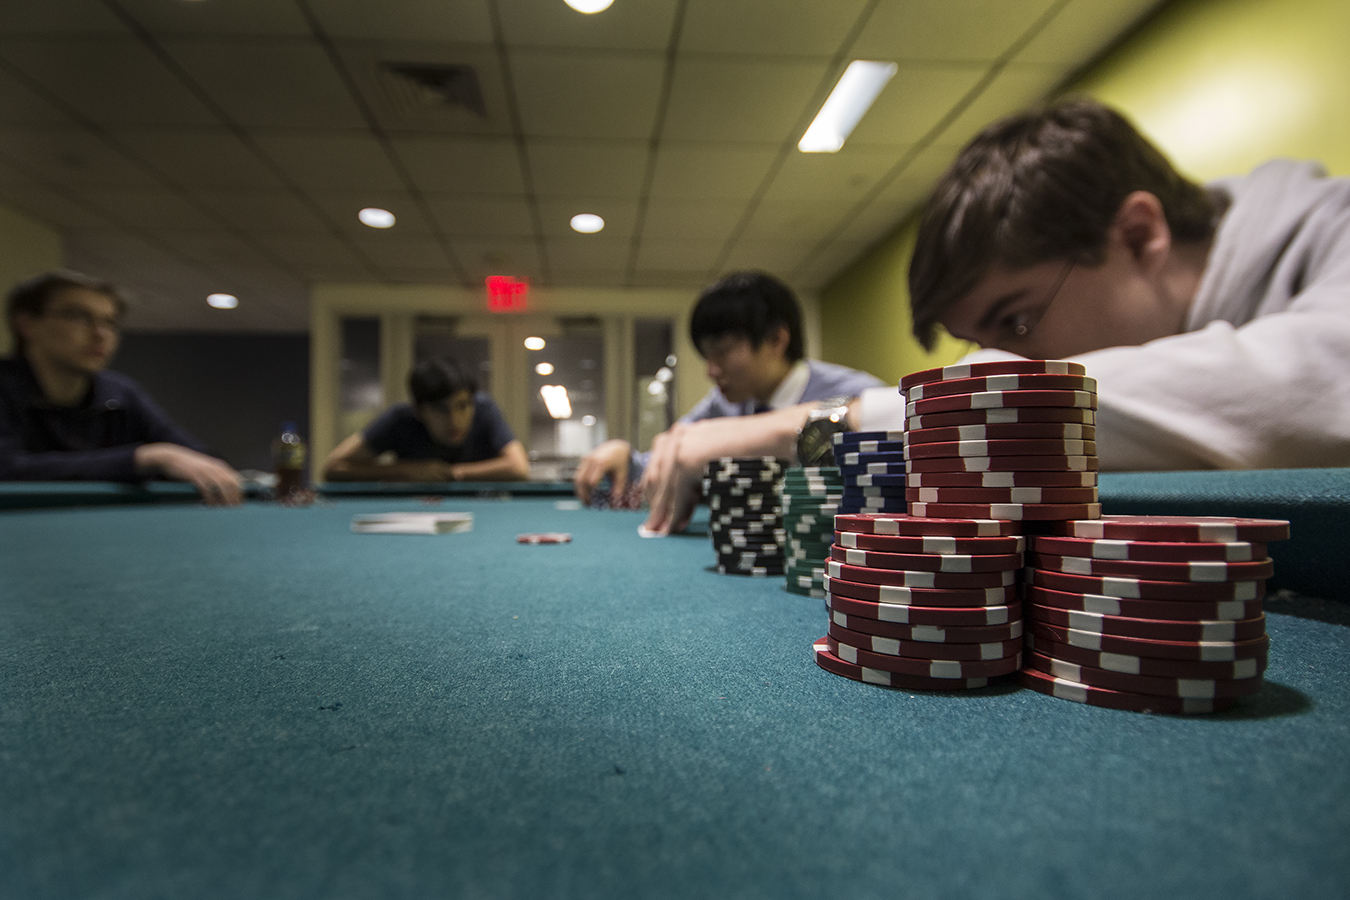 underground poker games at Upenn.Photography by Penn student Angelo Munafo, Copyright 2015.